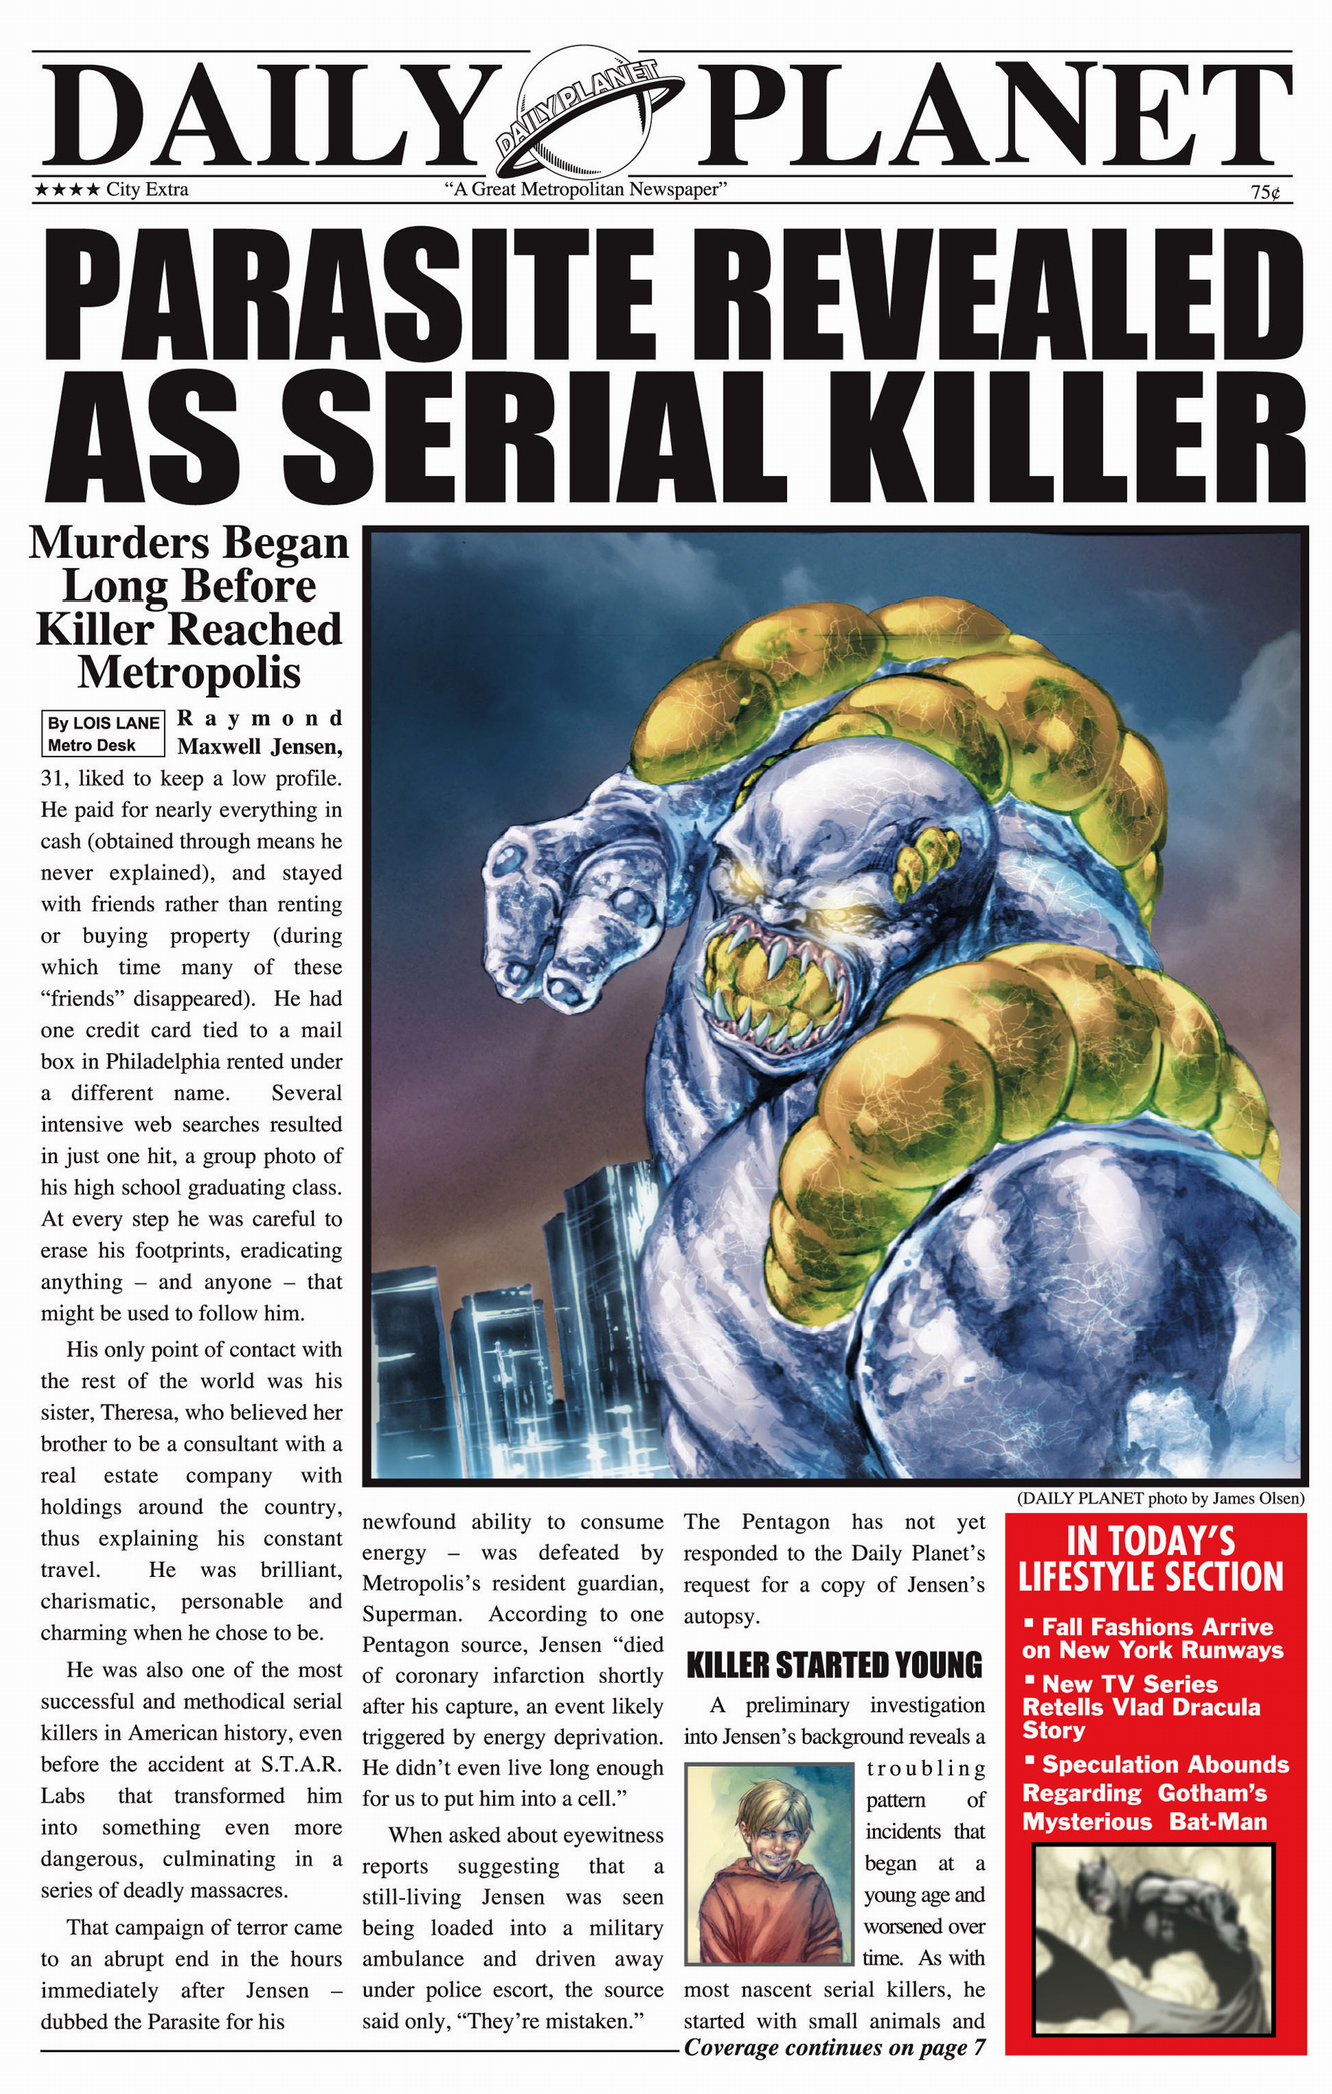 lois lane's article on the parasite (earth 1)